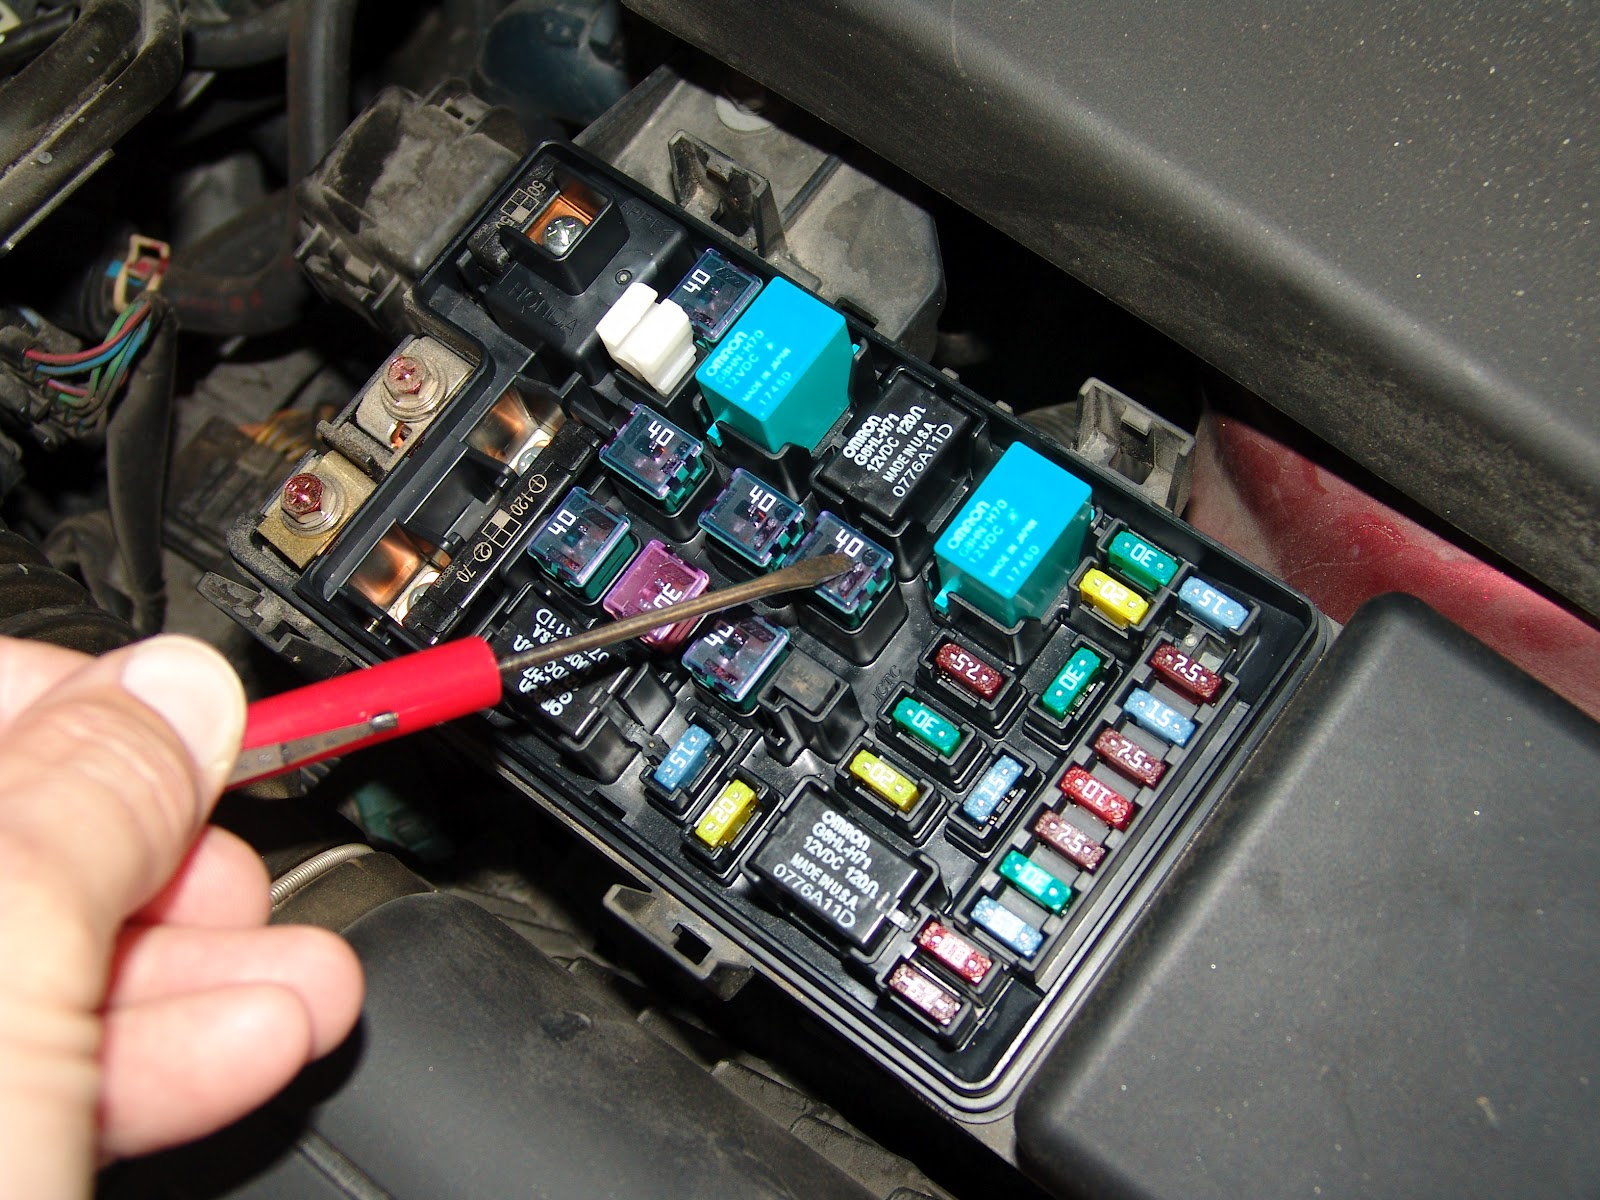 Acura Tl 2004 Fuse Box List Of Schematic Circuit Diagram To 2014 Acurazine Battery Image Details Rh Motogurumag Com Inside